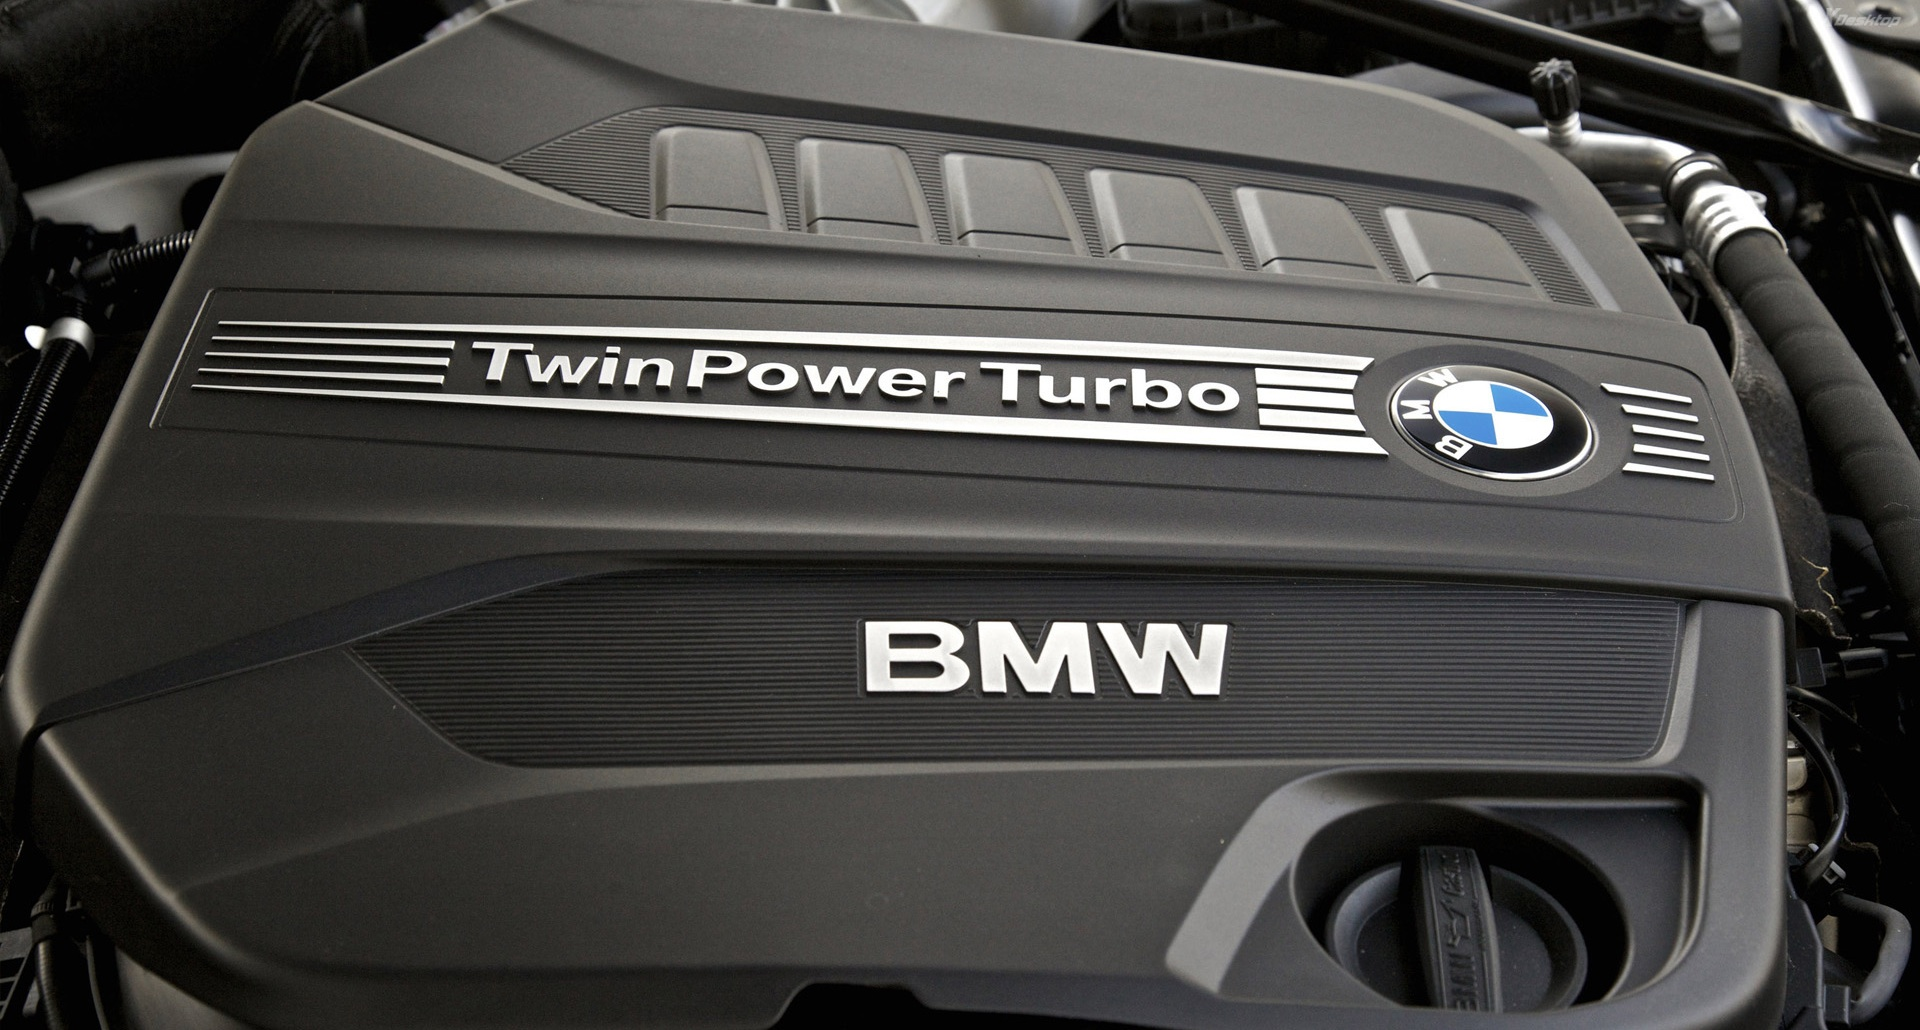 Disgruntled Owner Sues Bmw For Misleading Twinpower Turbo